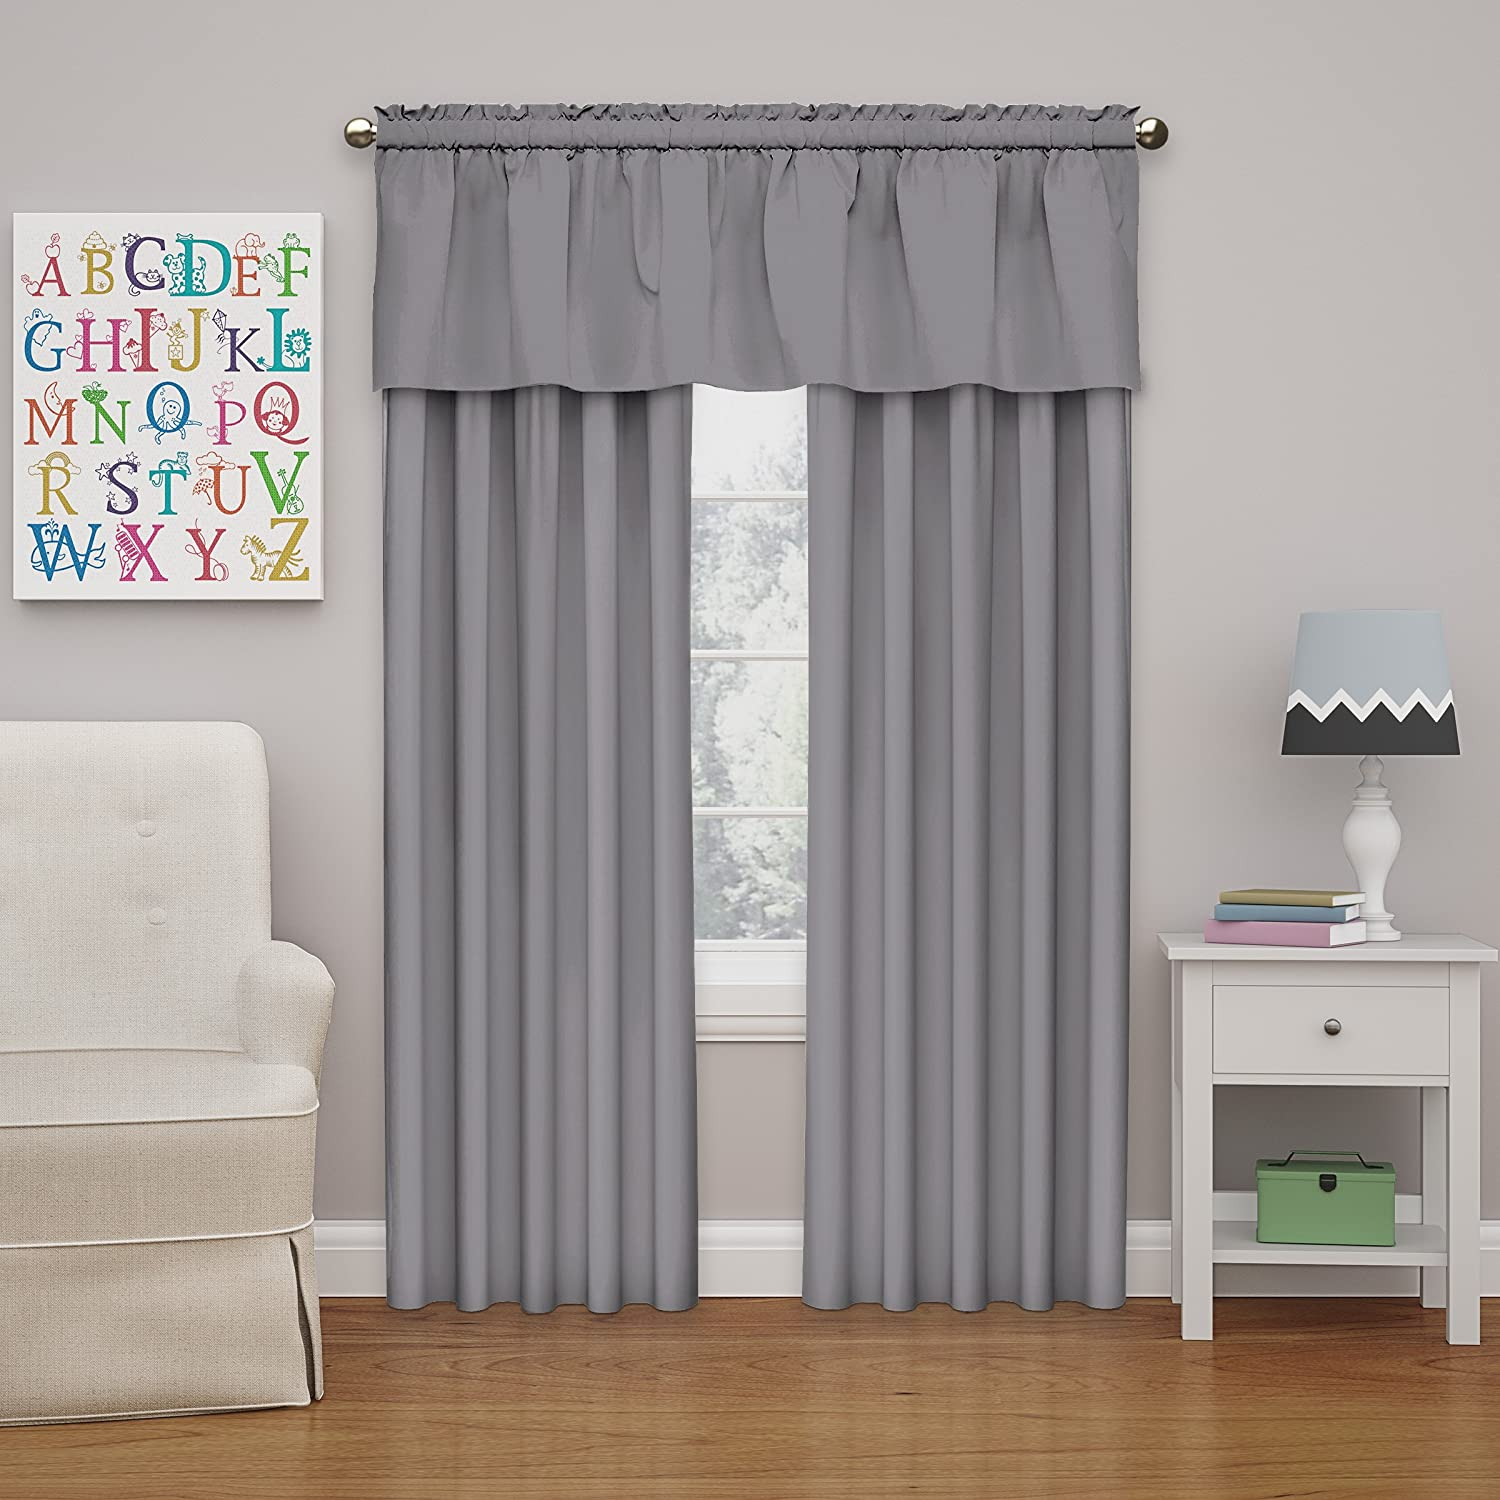 Eclipse Kids Microfiber 42-Inch by 18-Inch Room Darkening Window Valance, Grey